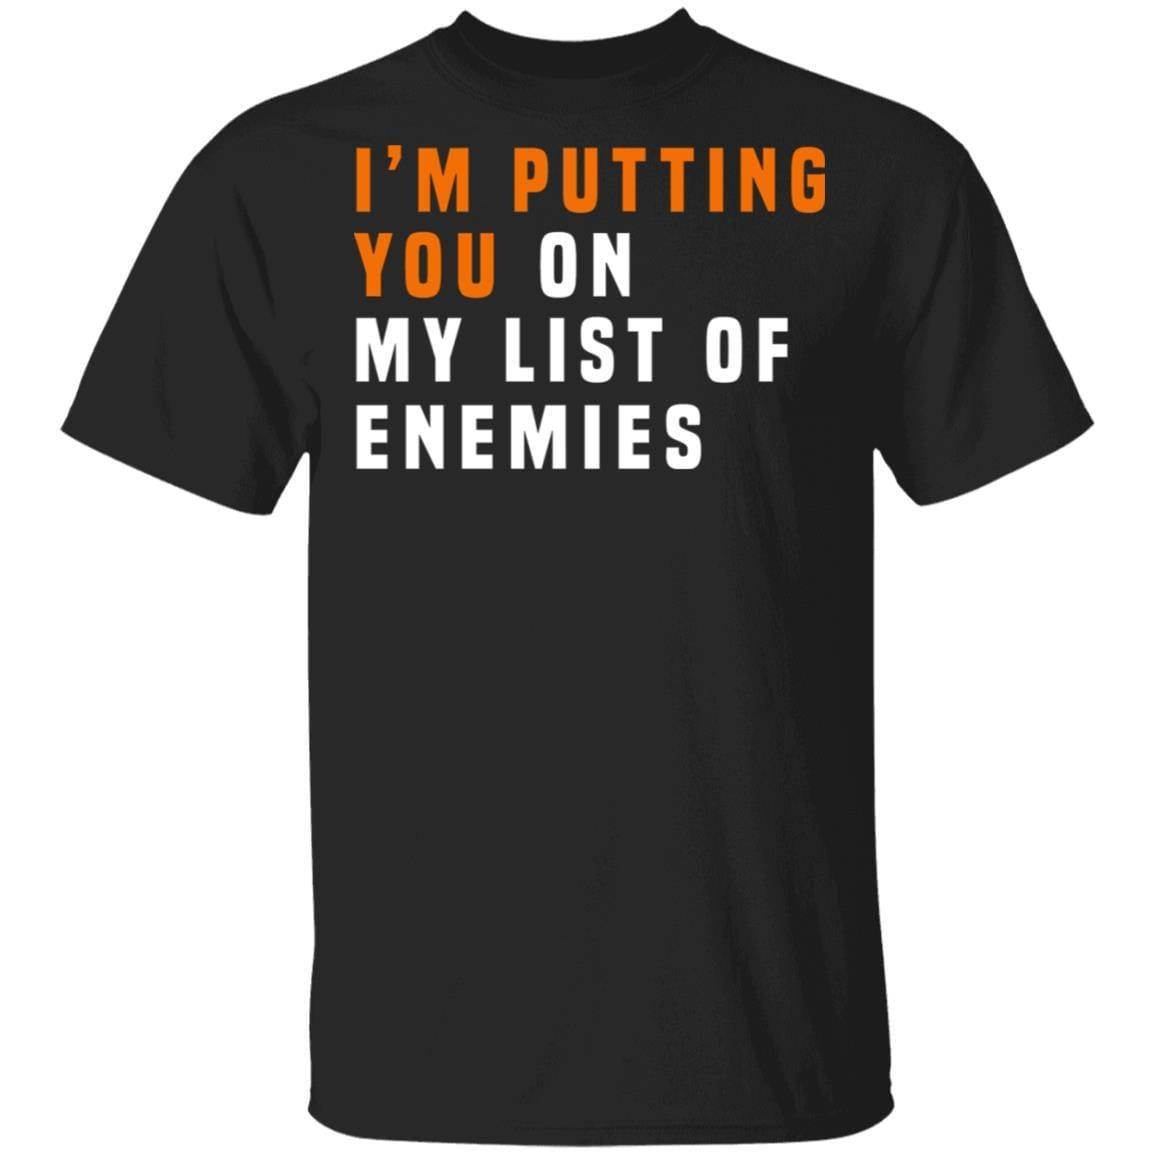 I'm Putting You On My List Of Enemies T-Shirts, Hoodies 1049-9953-87589165-48144 - Tee Ript